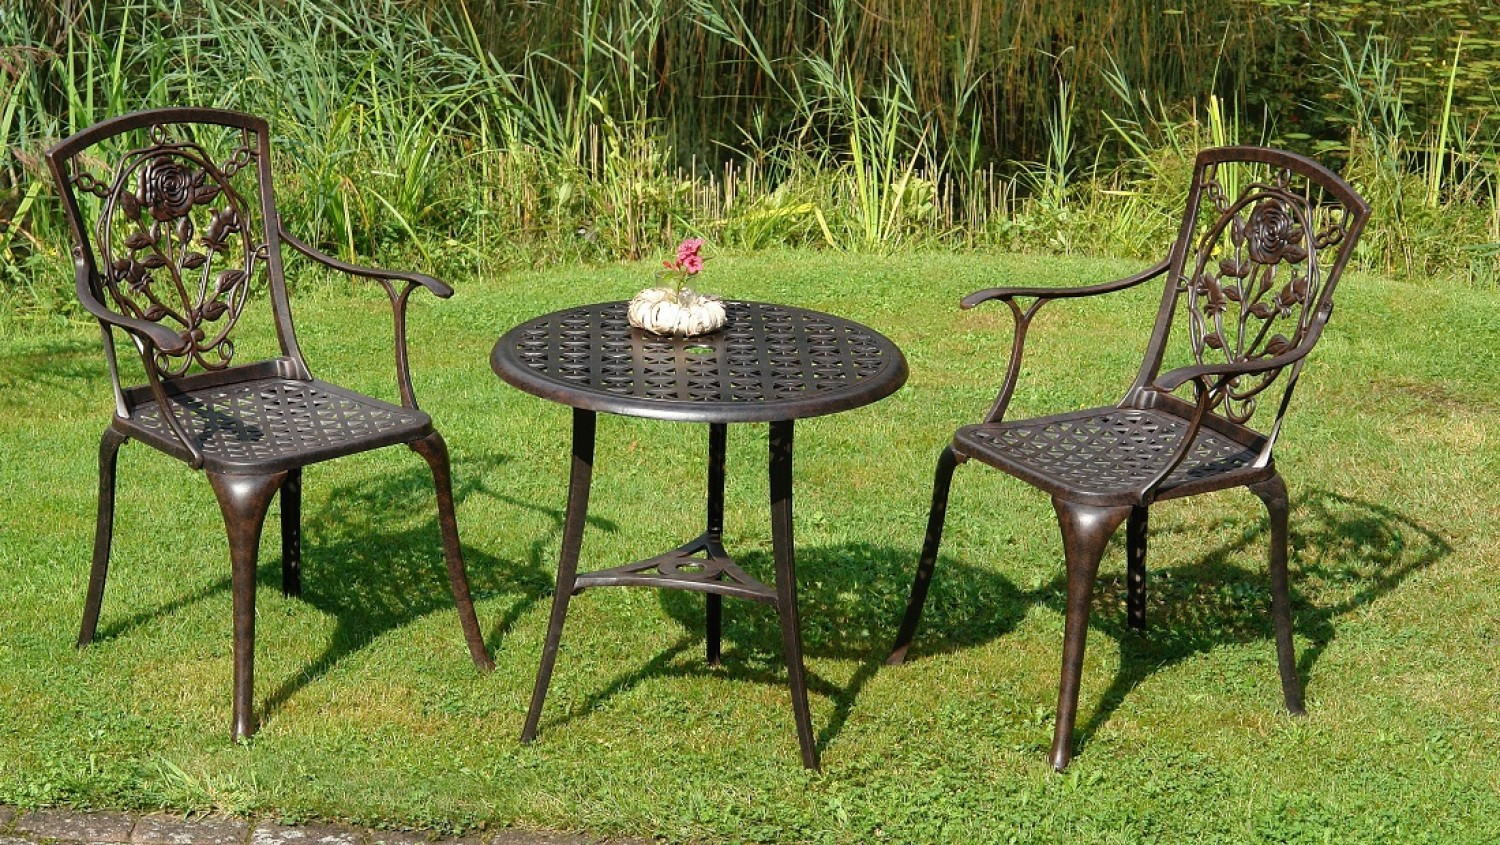 alu guss bistro set rose bronze batavia gartenm bel onlineshop f r hochwertige gartenm be. Black Bedroom Furniture Sets. Home Design Ideas